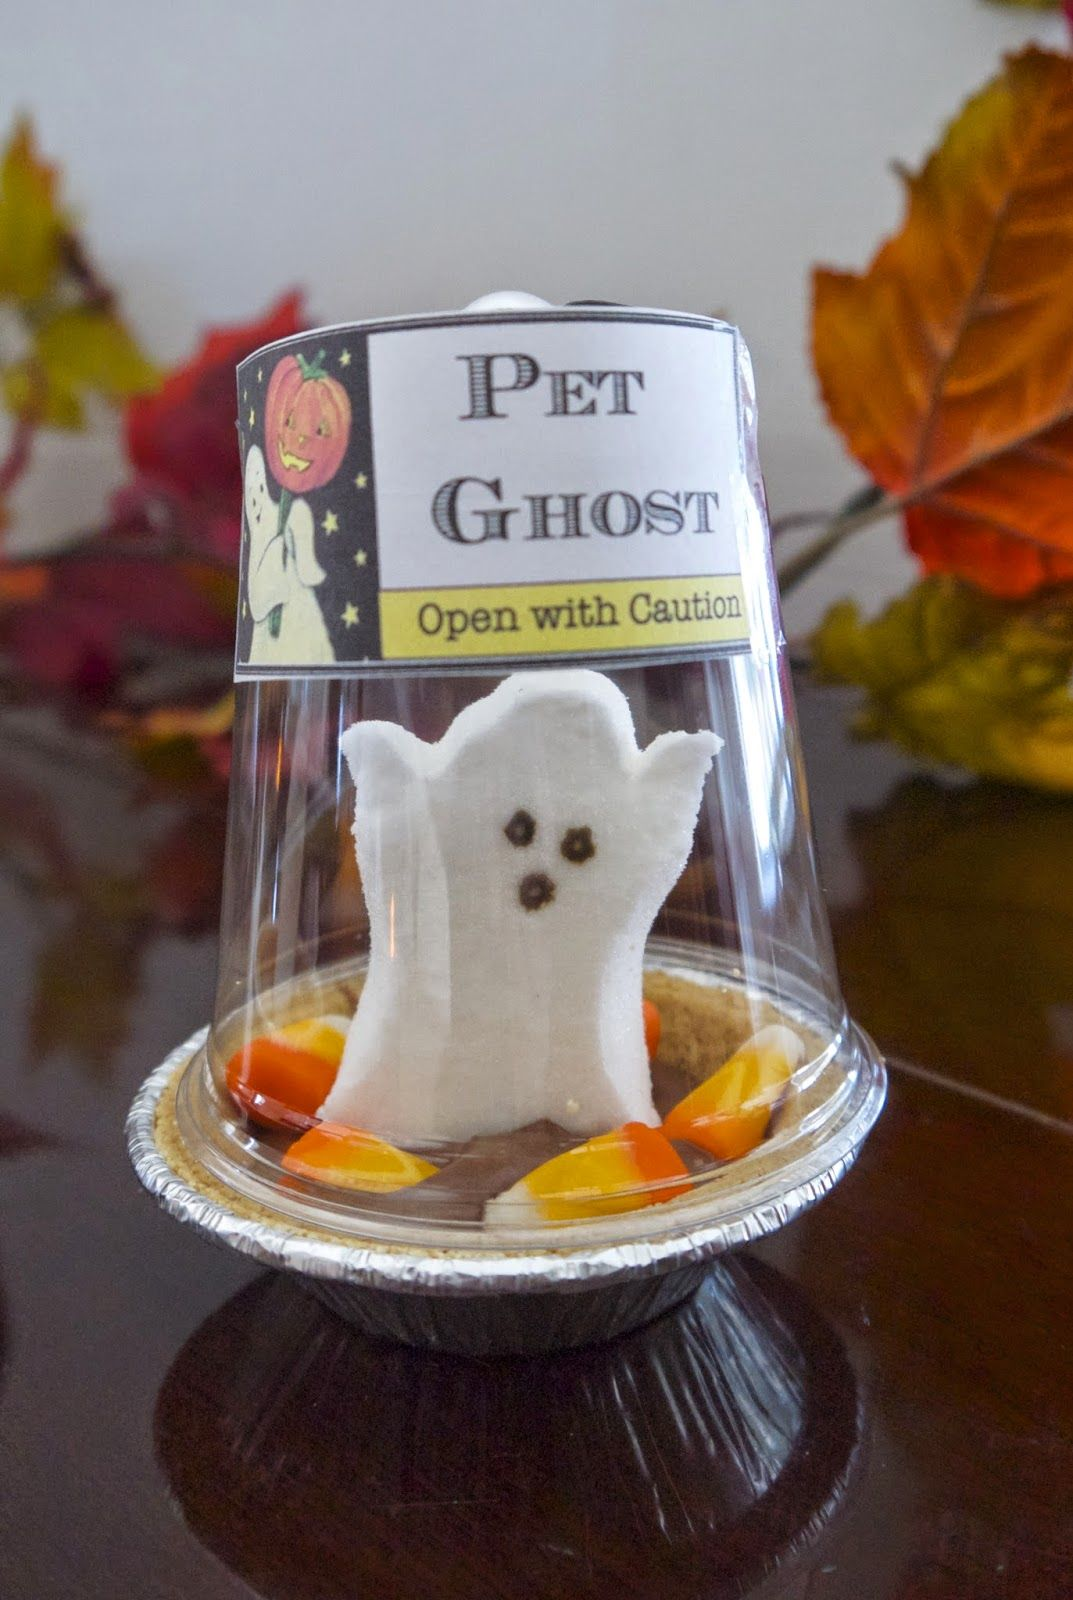 Pet ghost peeps - fun easy Halloween treat | Holiday Jazz ...